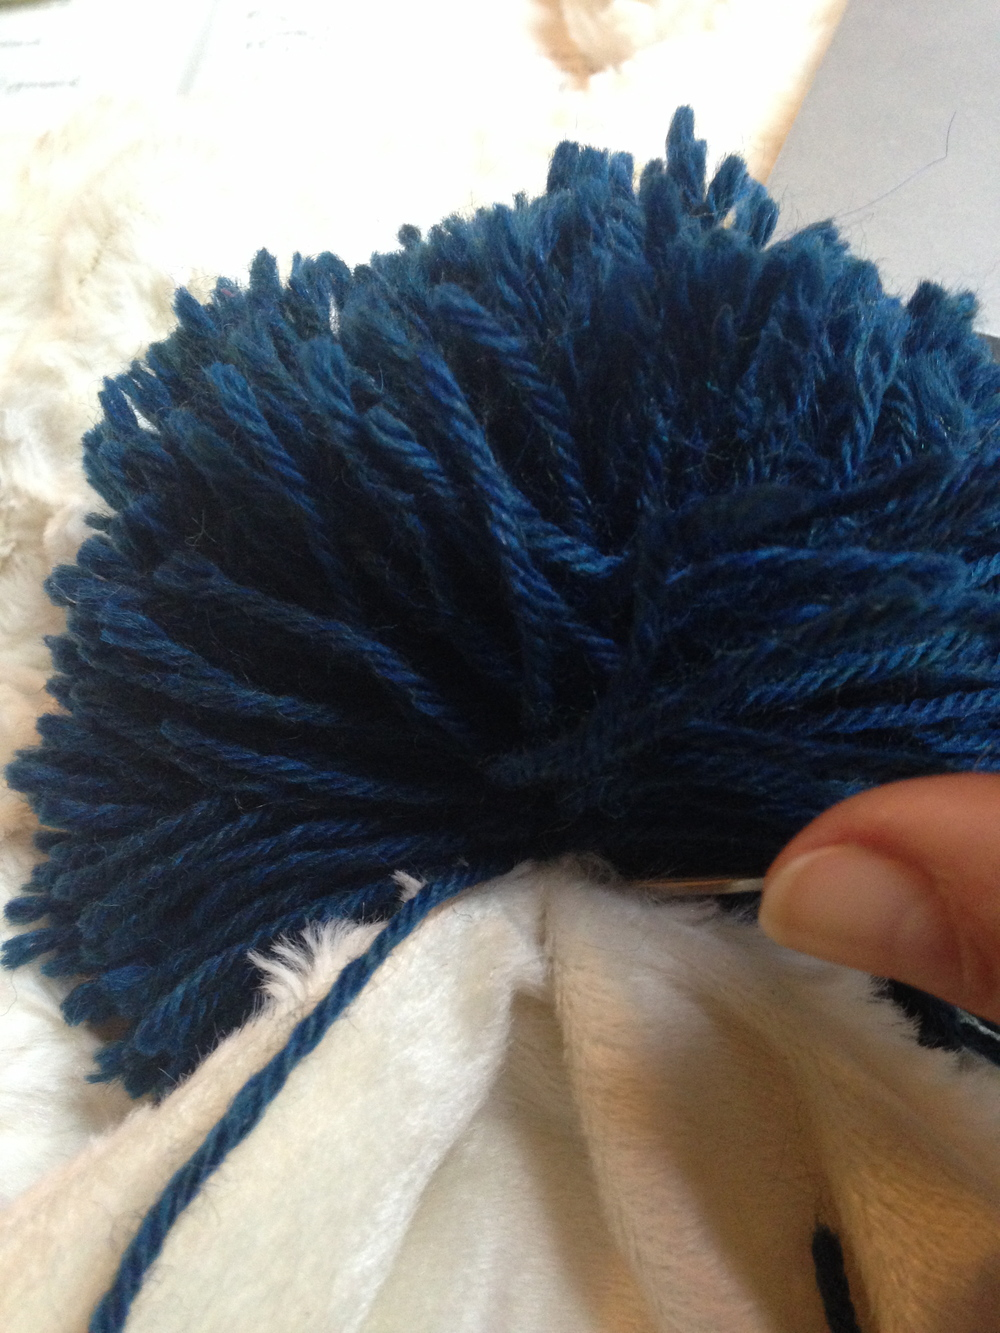 sewing the poms onto the blanket